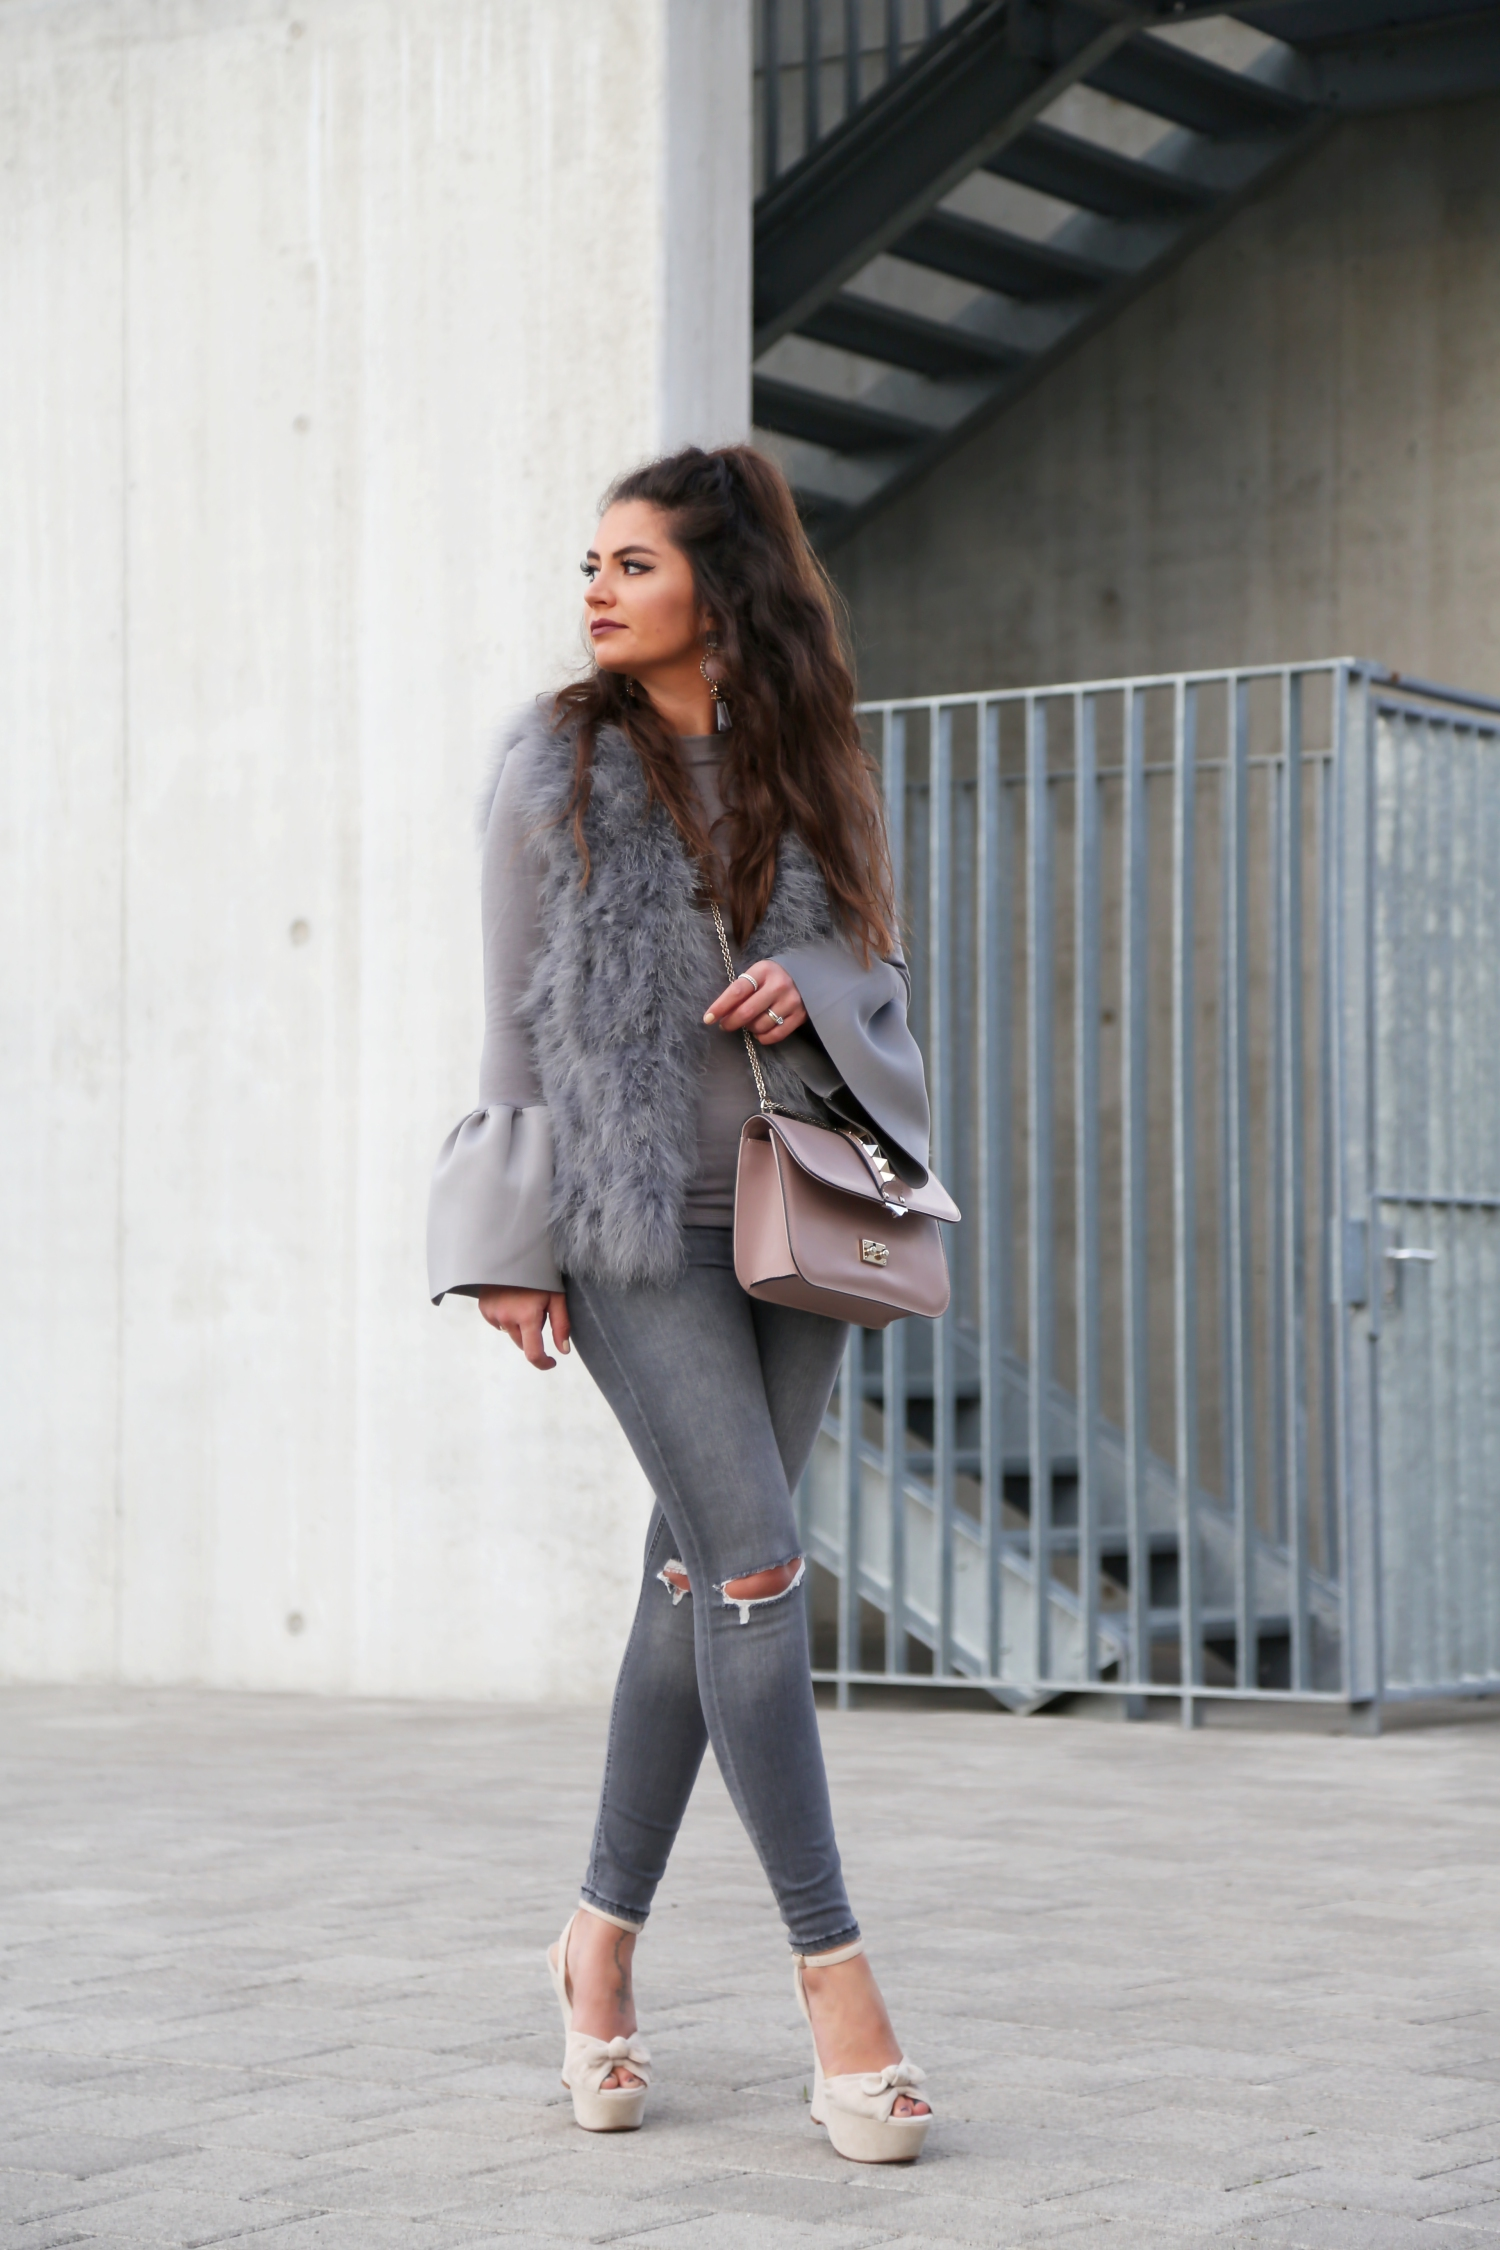 outfit: Grey and nude